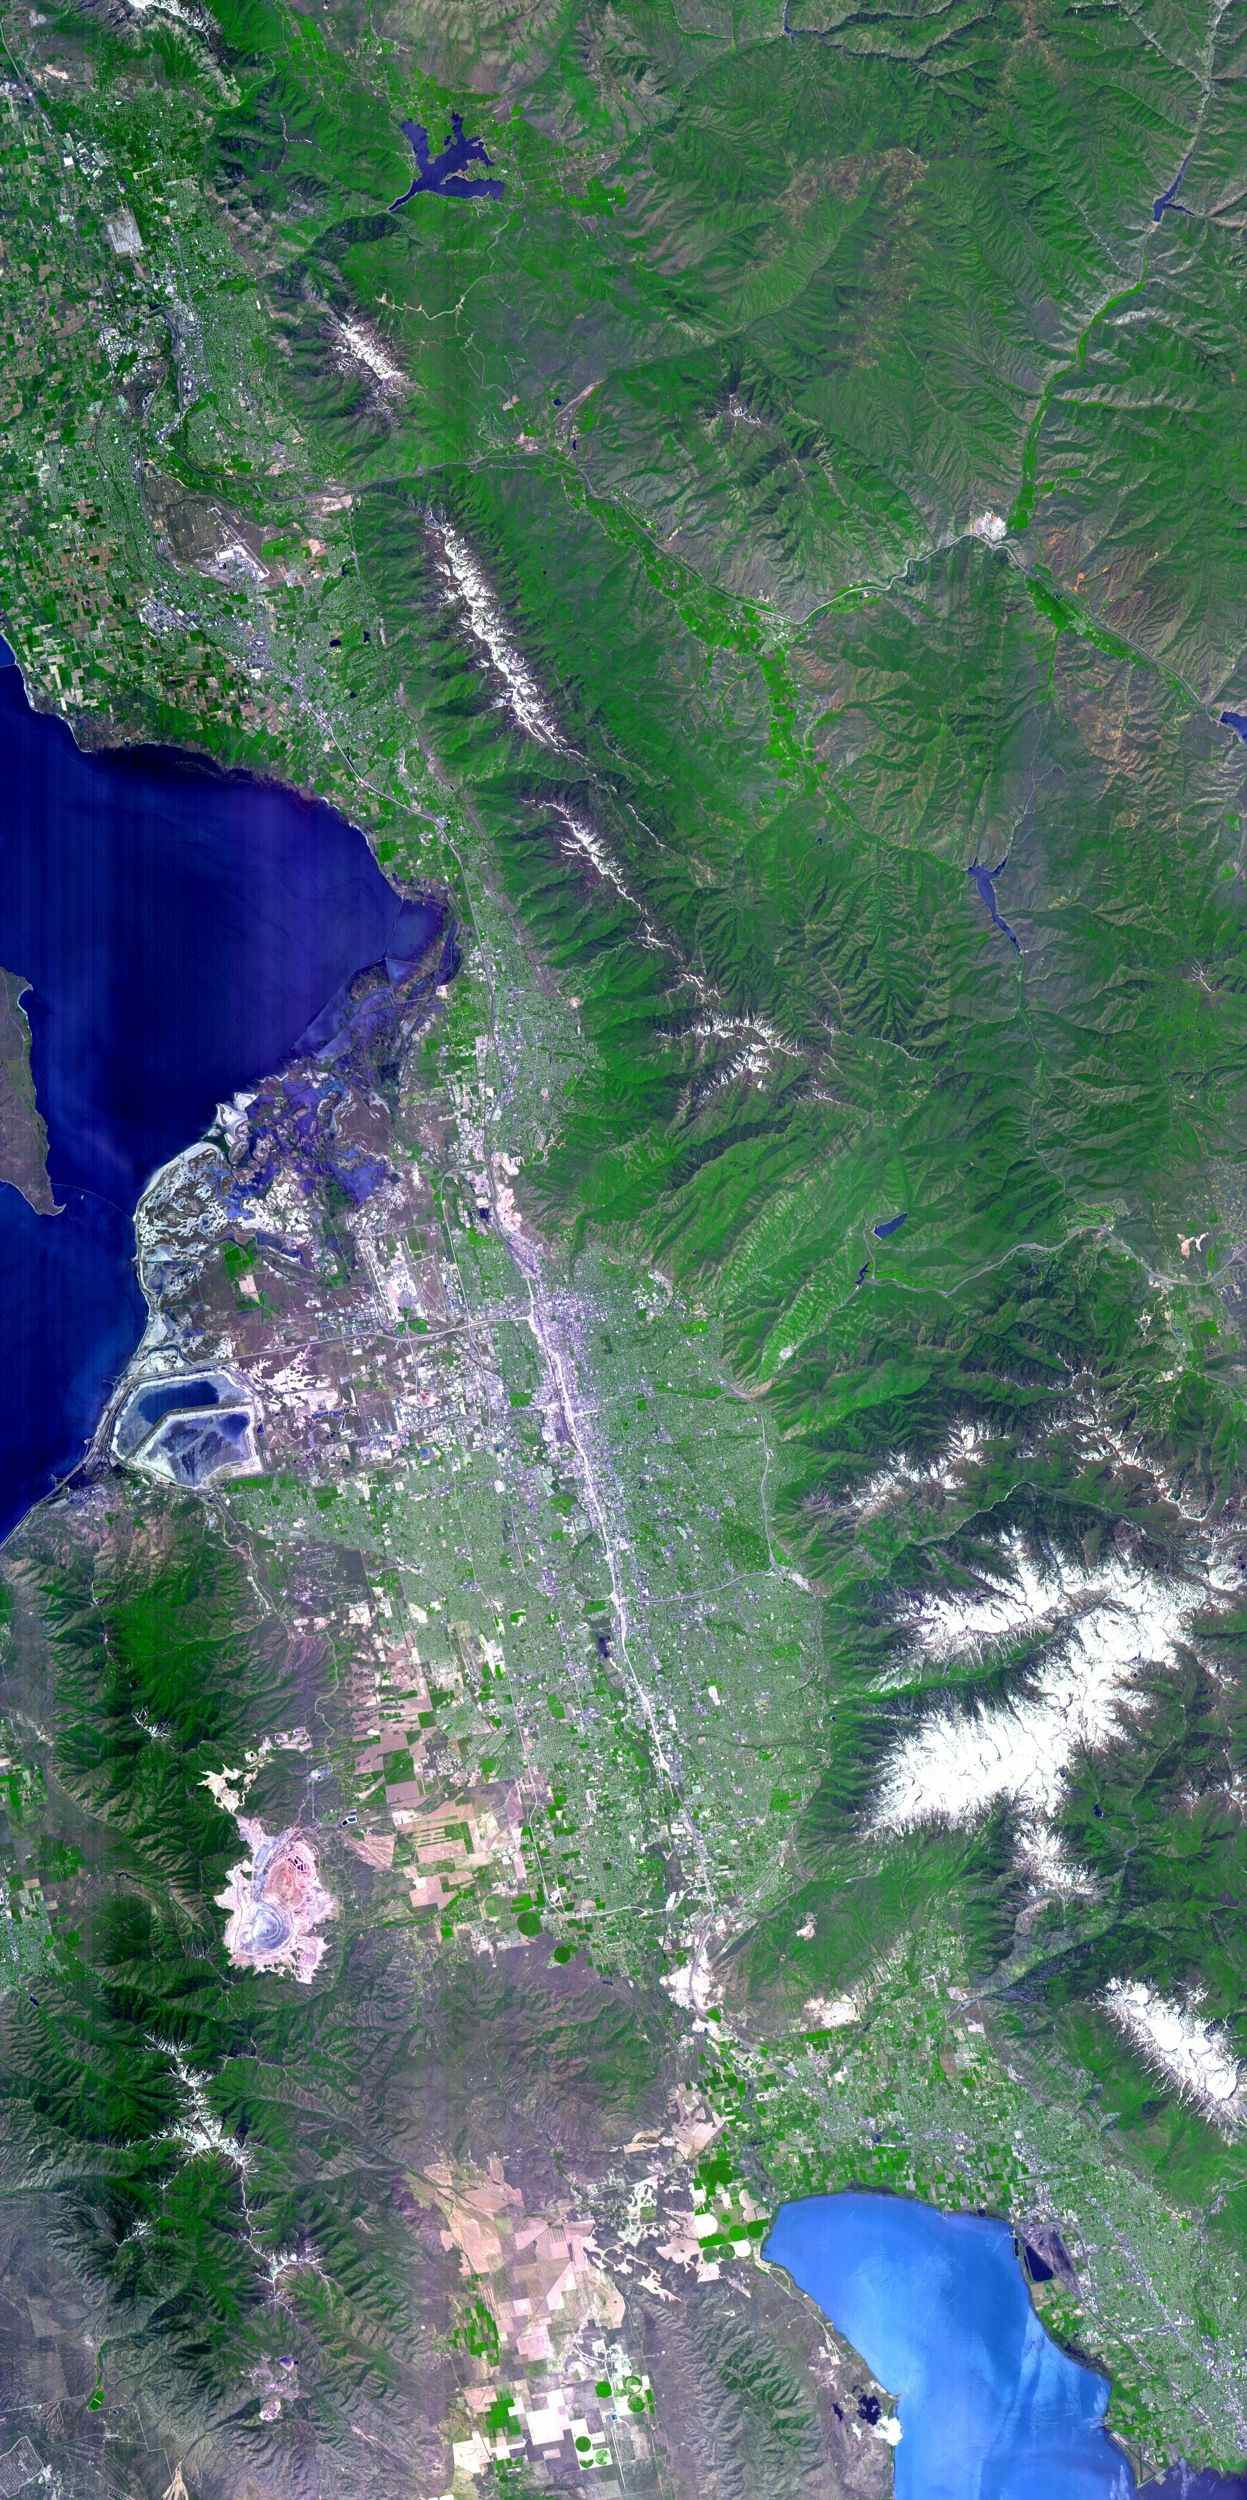 The 2002 Winter Olympics were hosted by Salt Lake City at several venues within the city, in nearby cities, and within the adjacent Wasatch Mountains. NASA's Terra satellite captured this image on May 28, 2000.